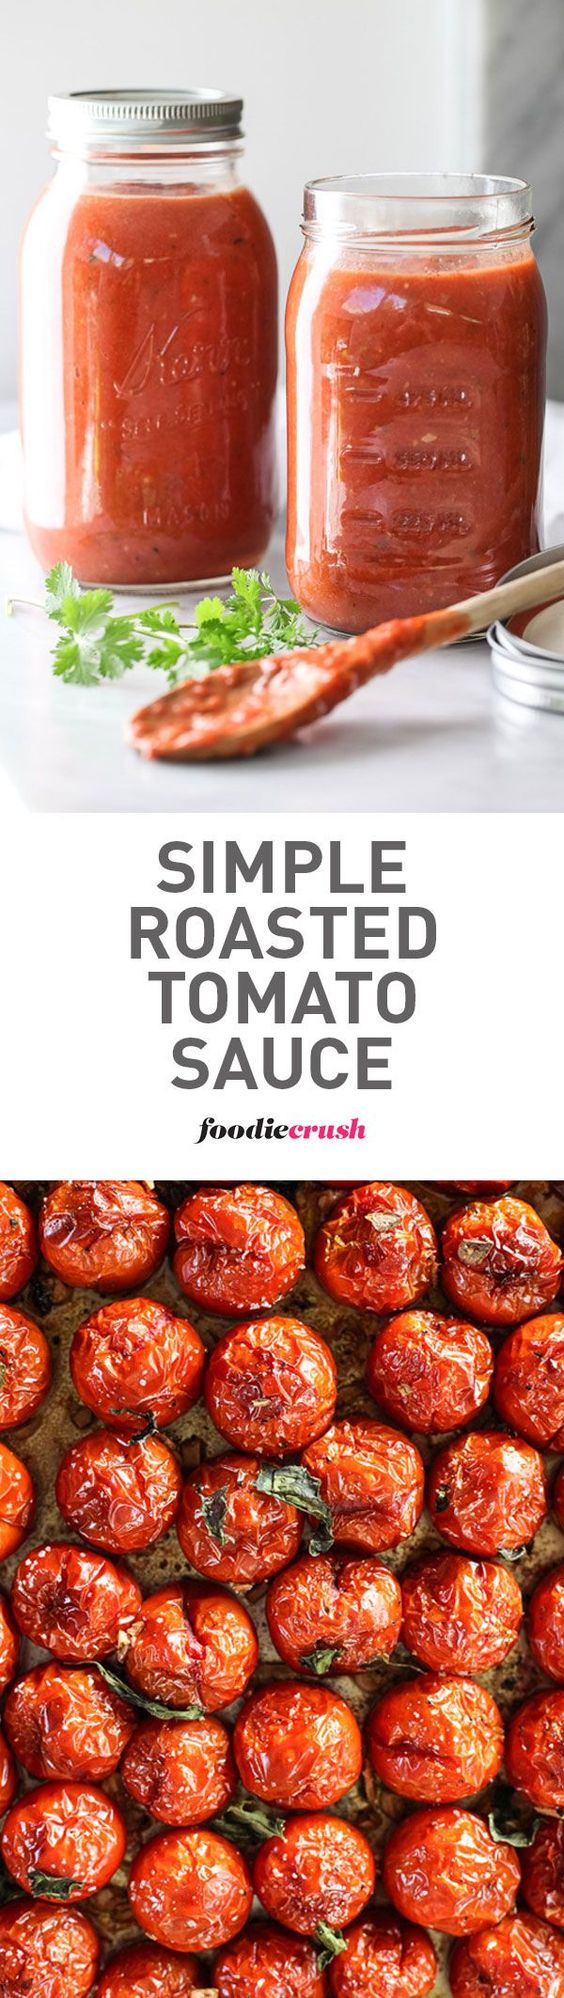 The secret to this favorite sauce #recipe starts with fresh tomatoes that are roasted in the oven to make them extra sweet all year round | http://foodiecrush.com